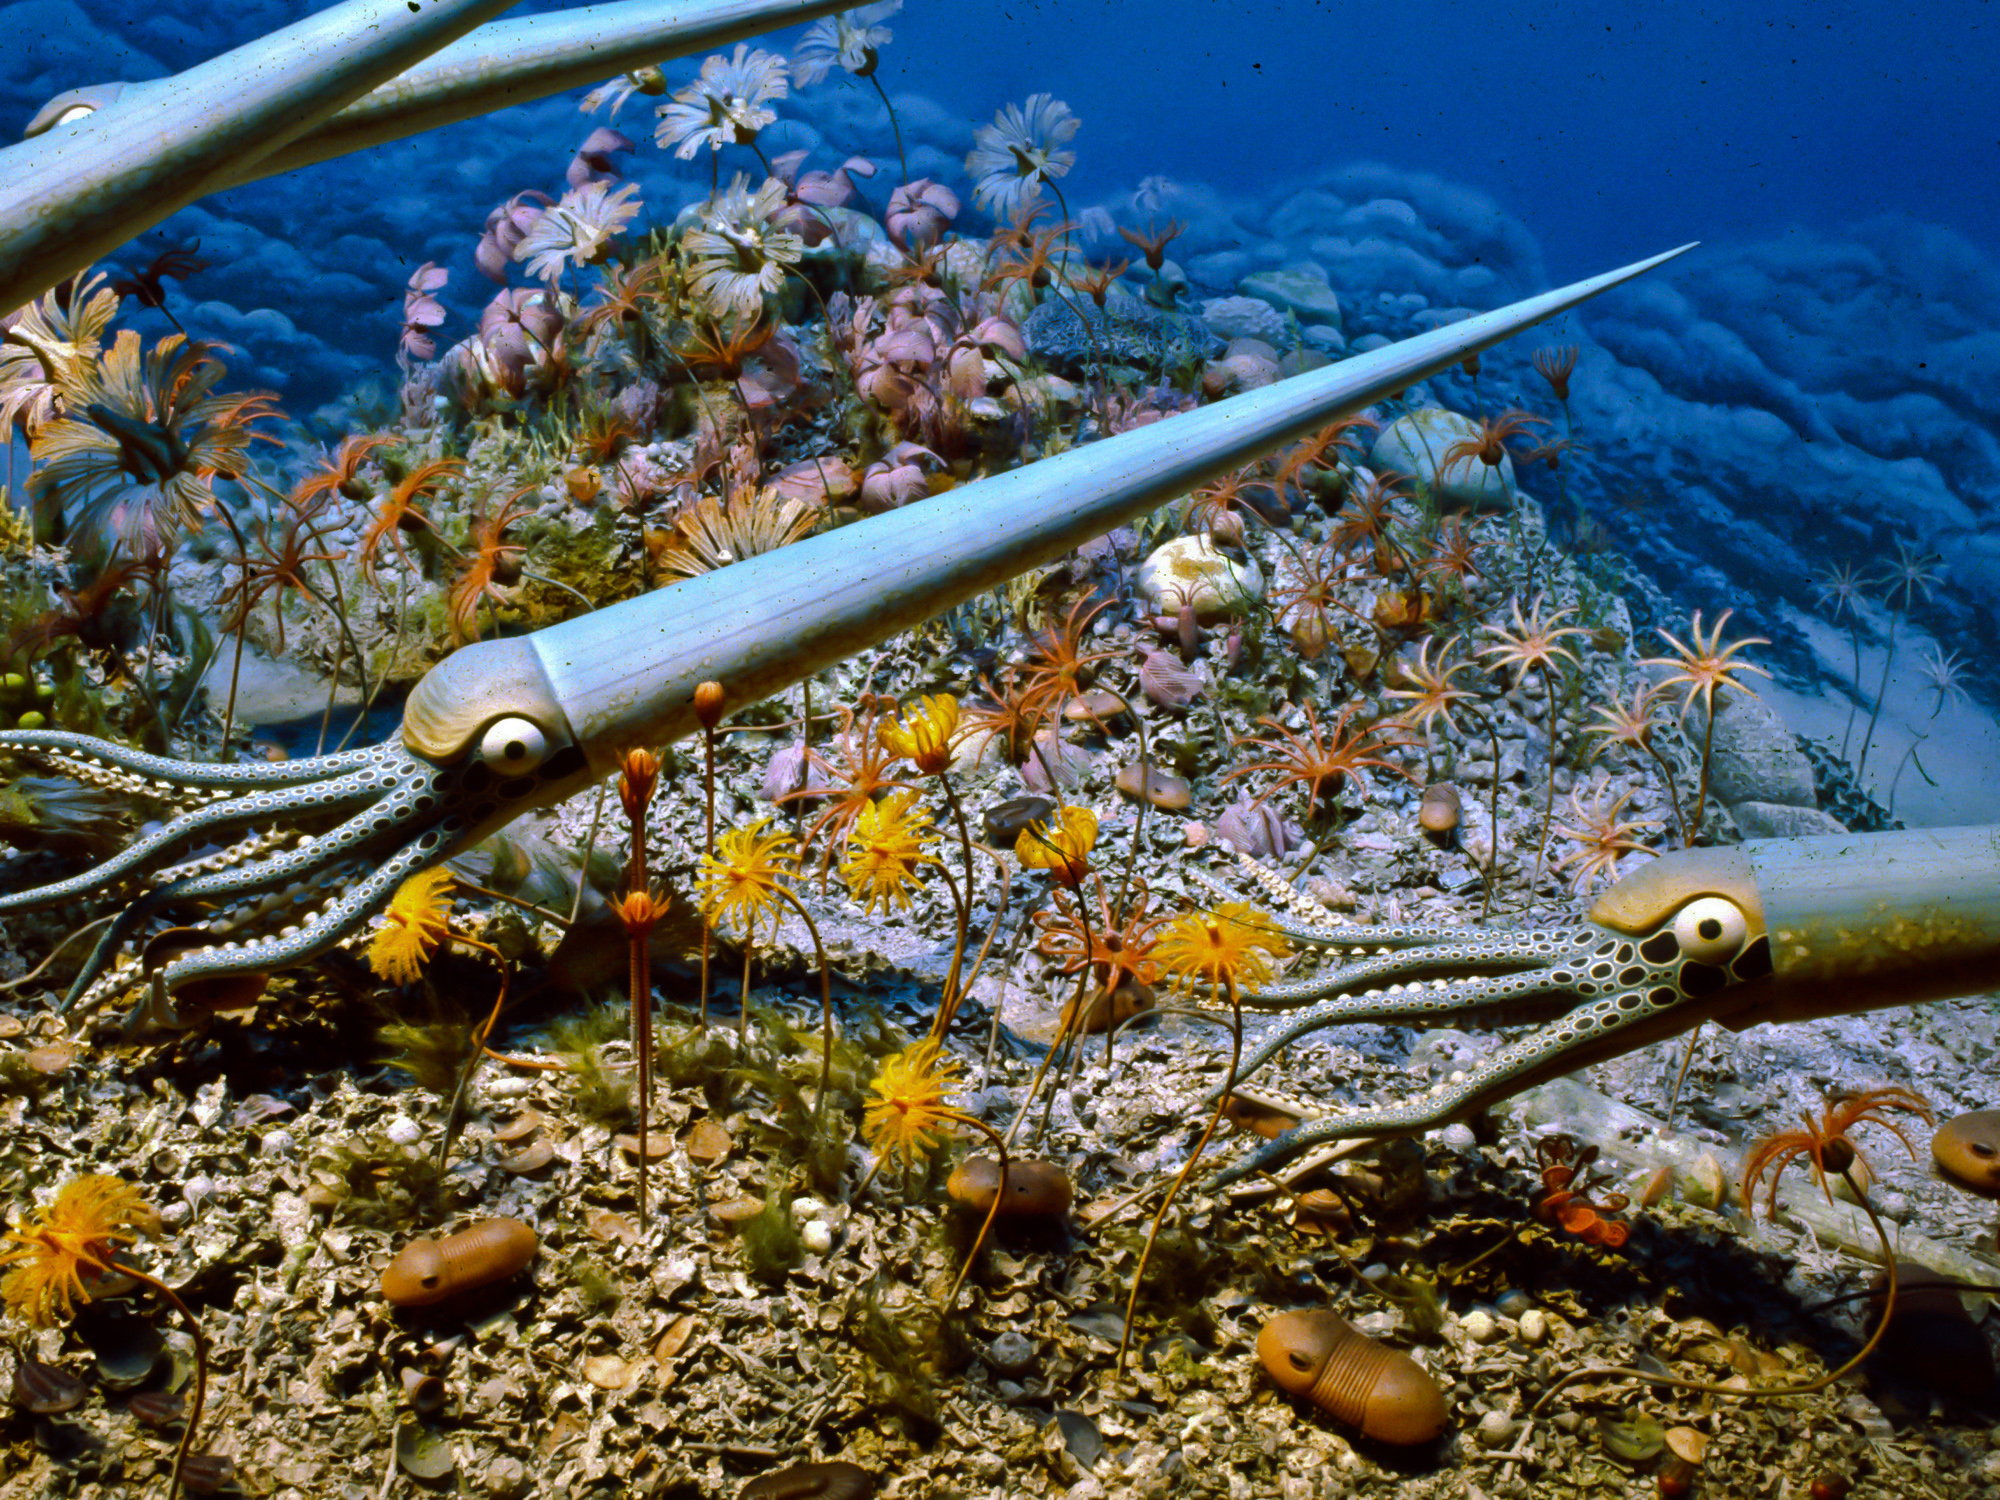 Closeup of cephalopods in the Silurian reef diorama at the Milwaukee Public Museum.